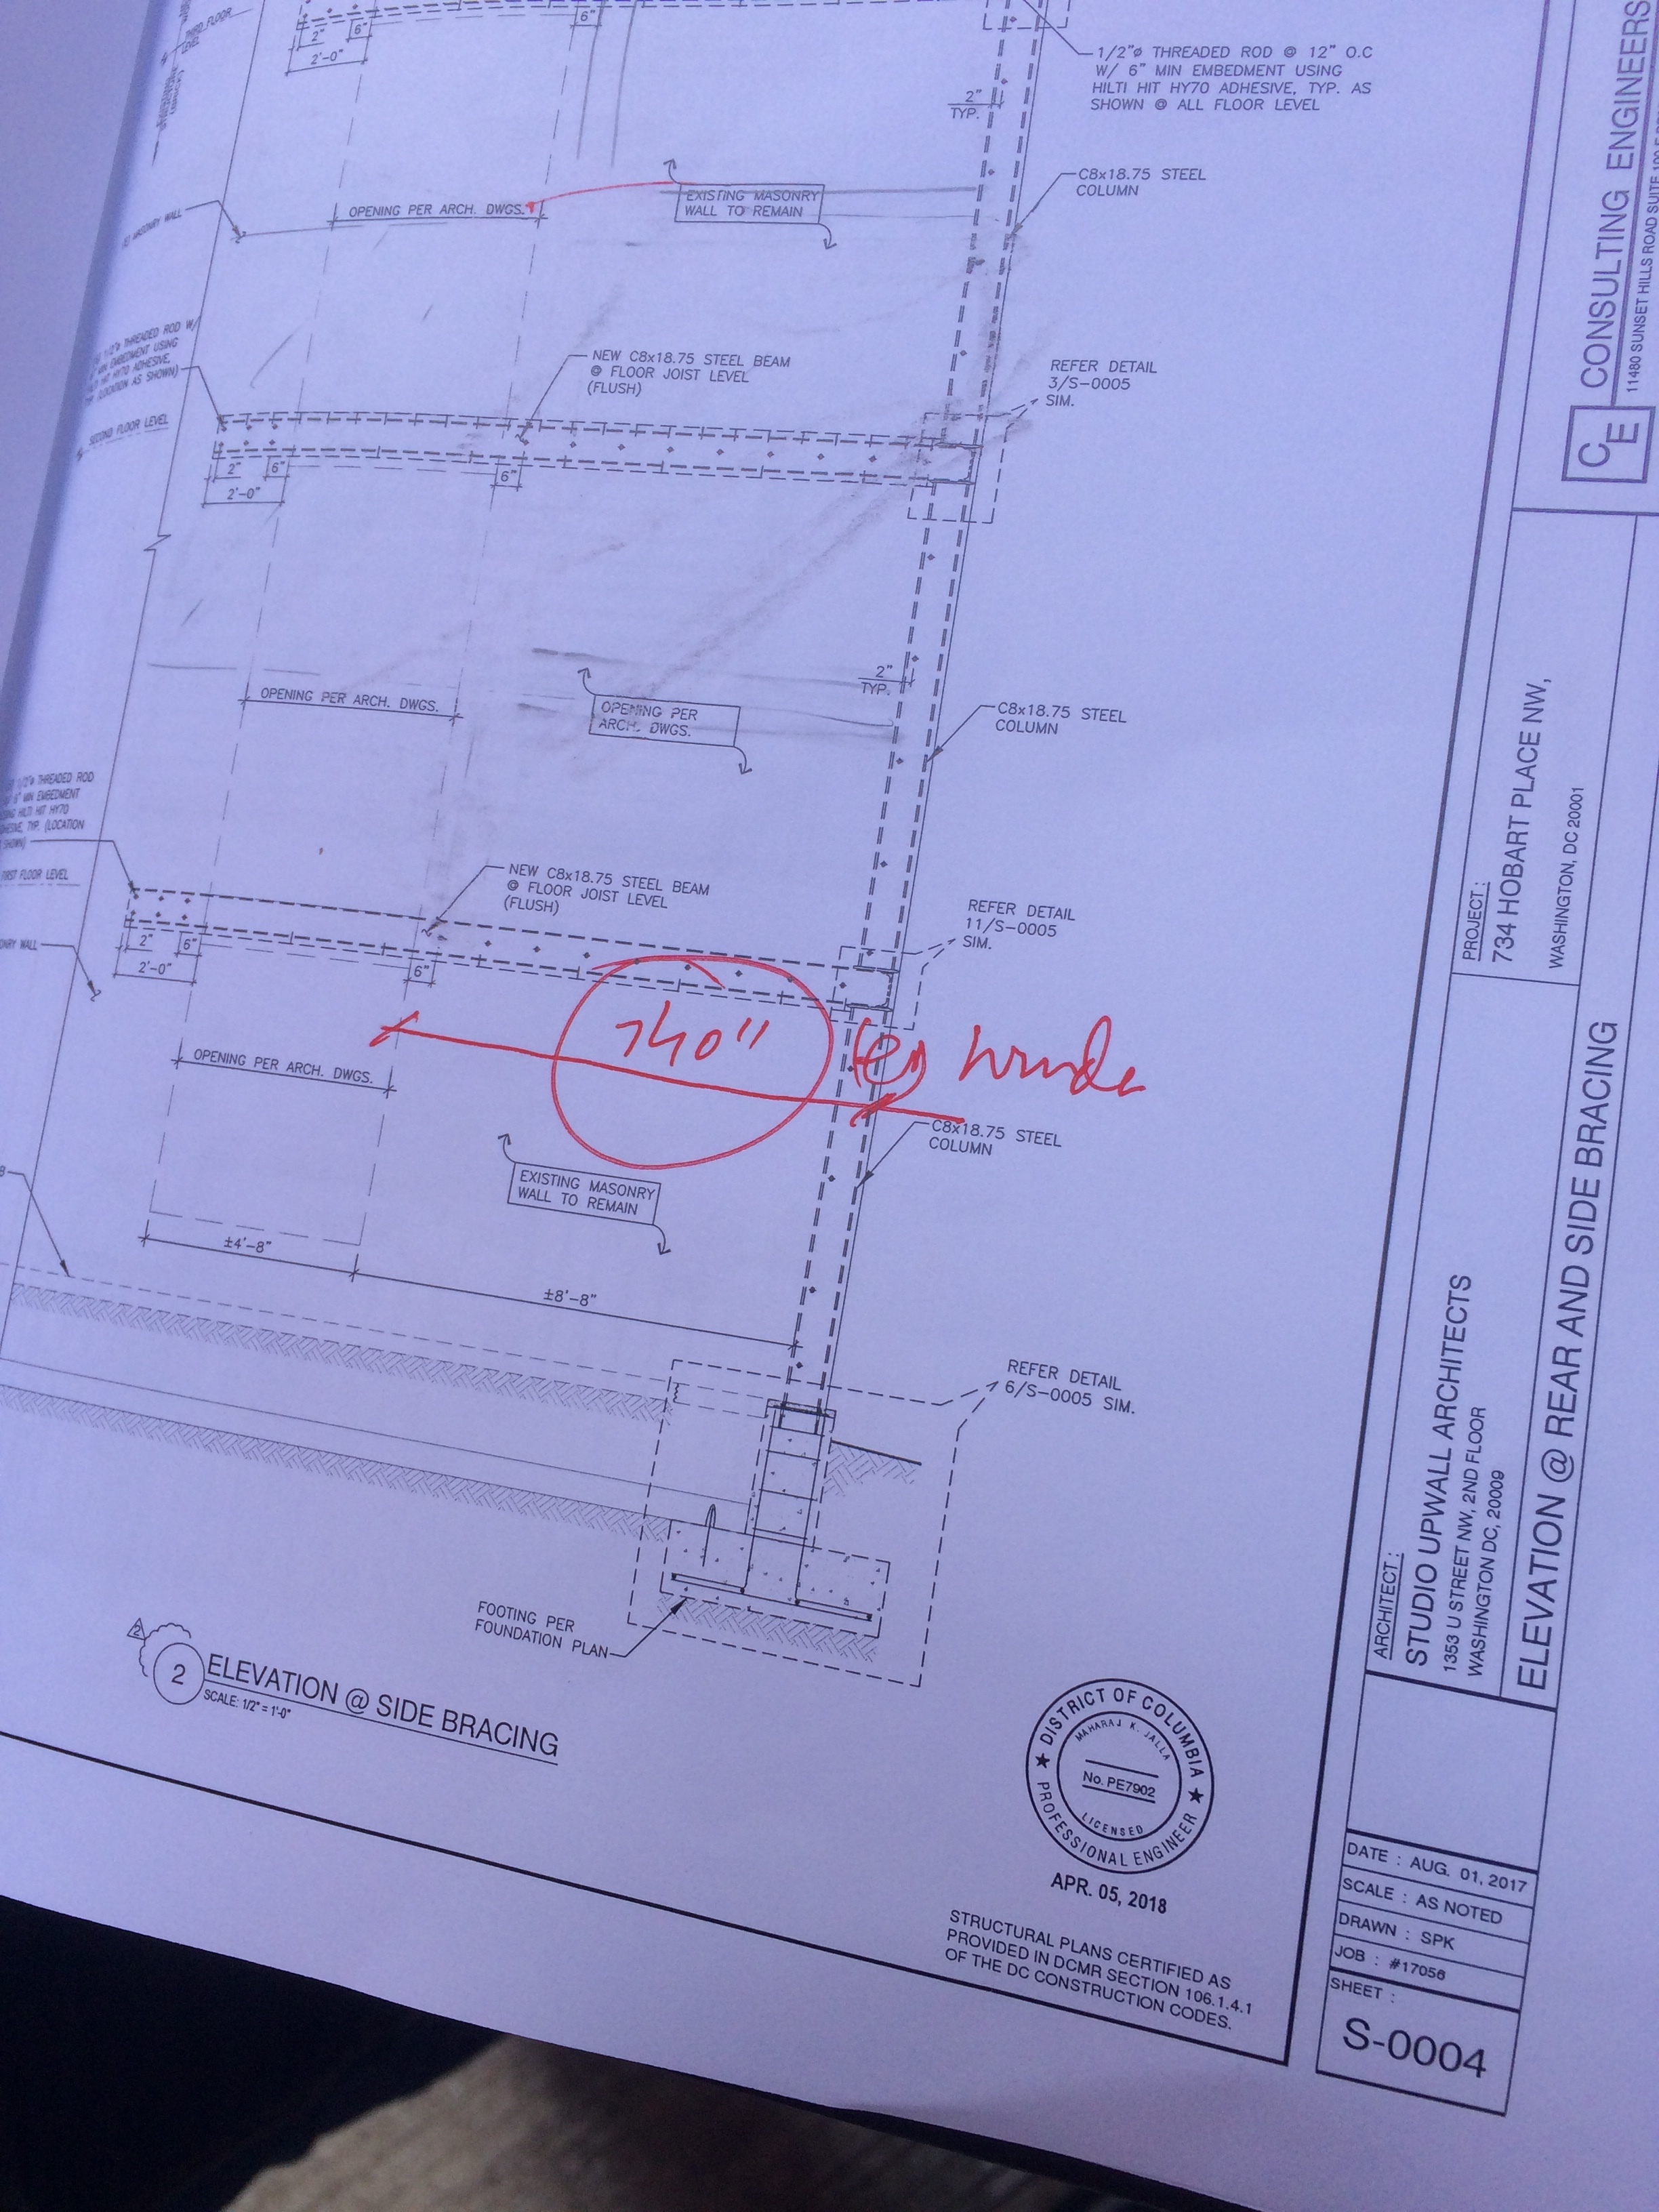 Structural engineer's drawing showing new foundation and steel frame.